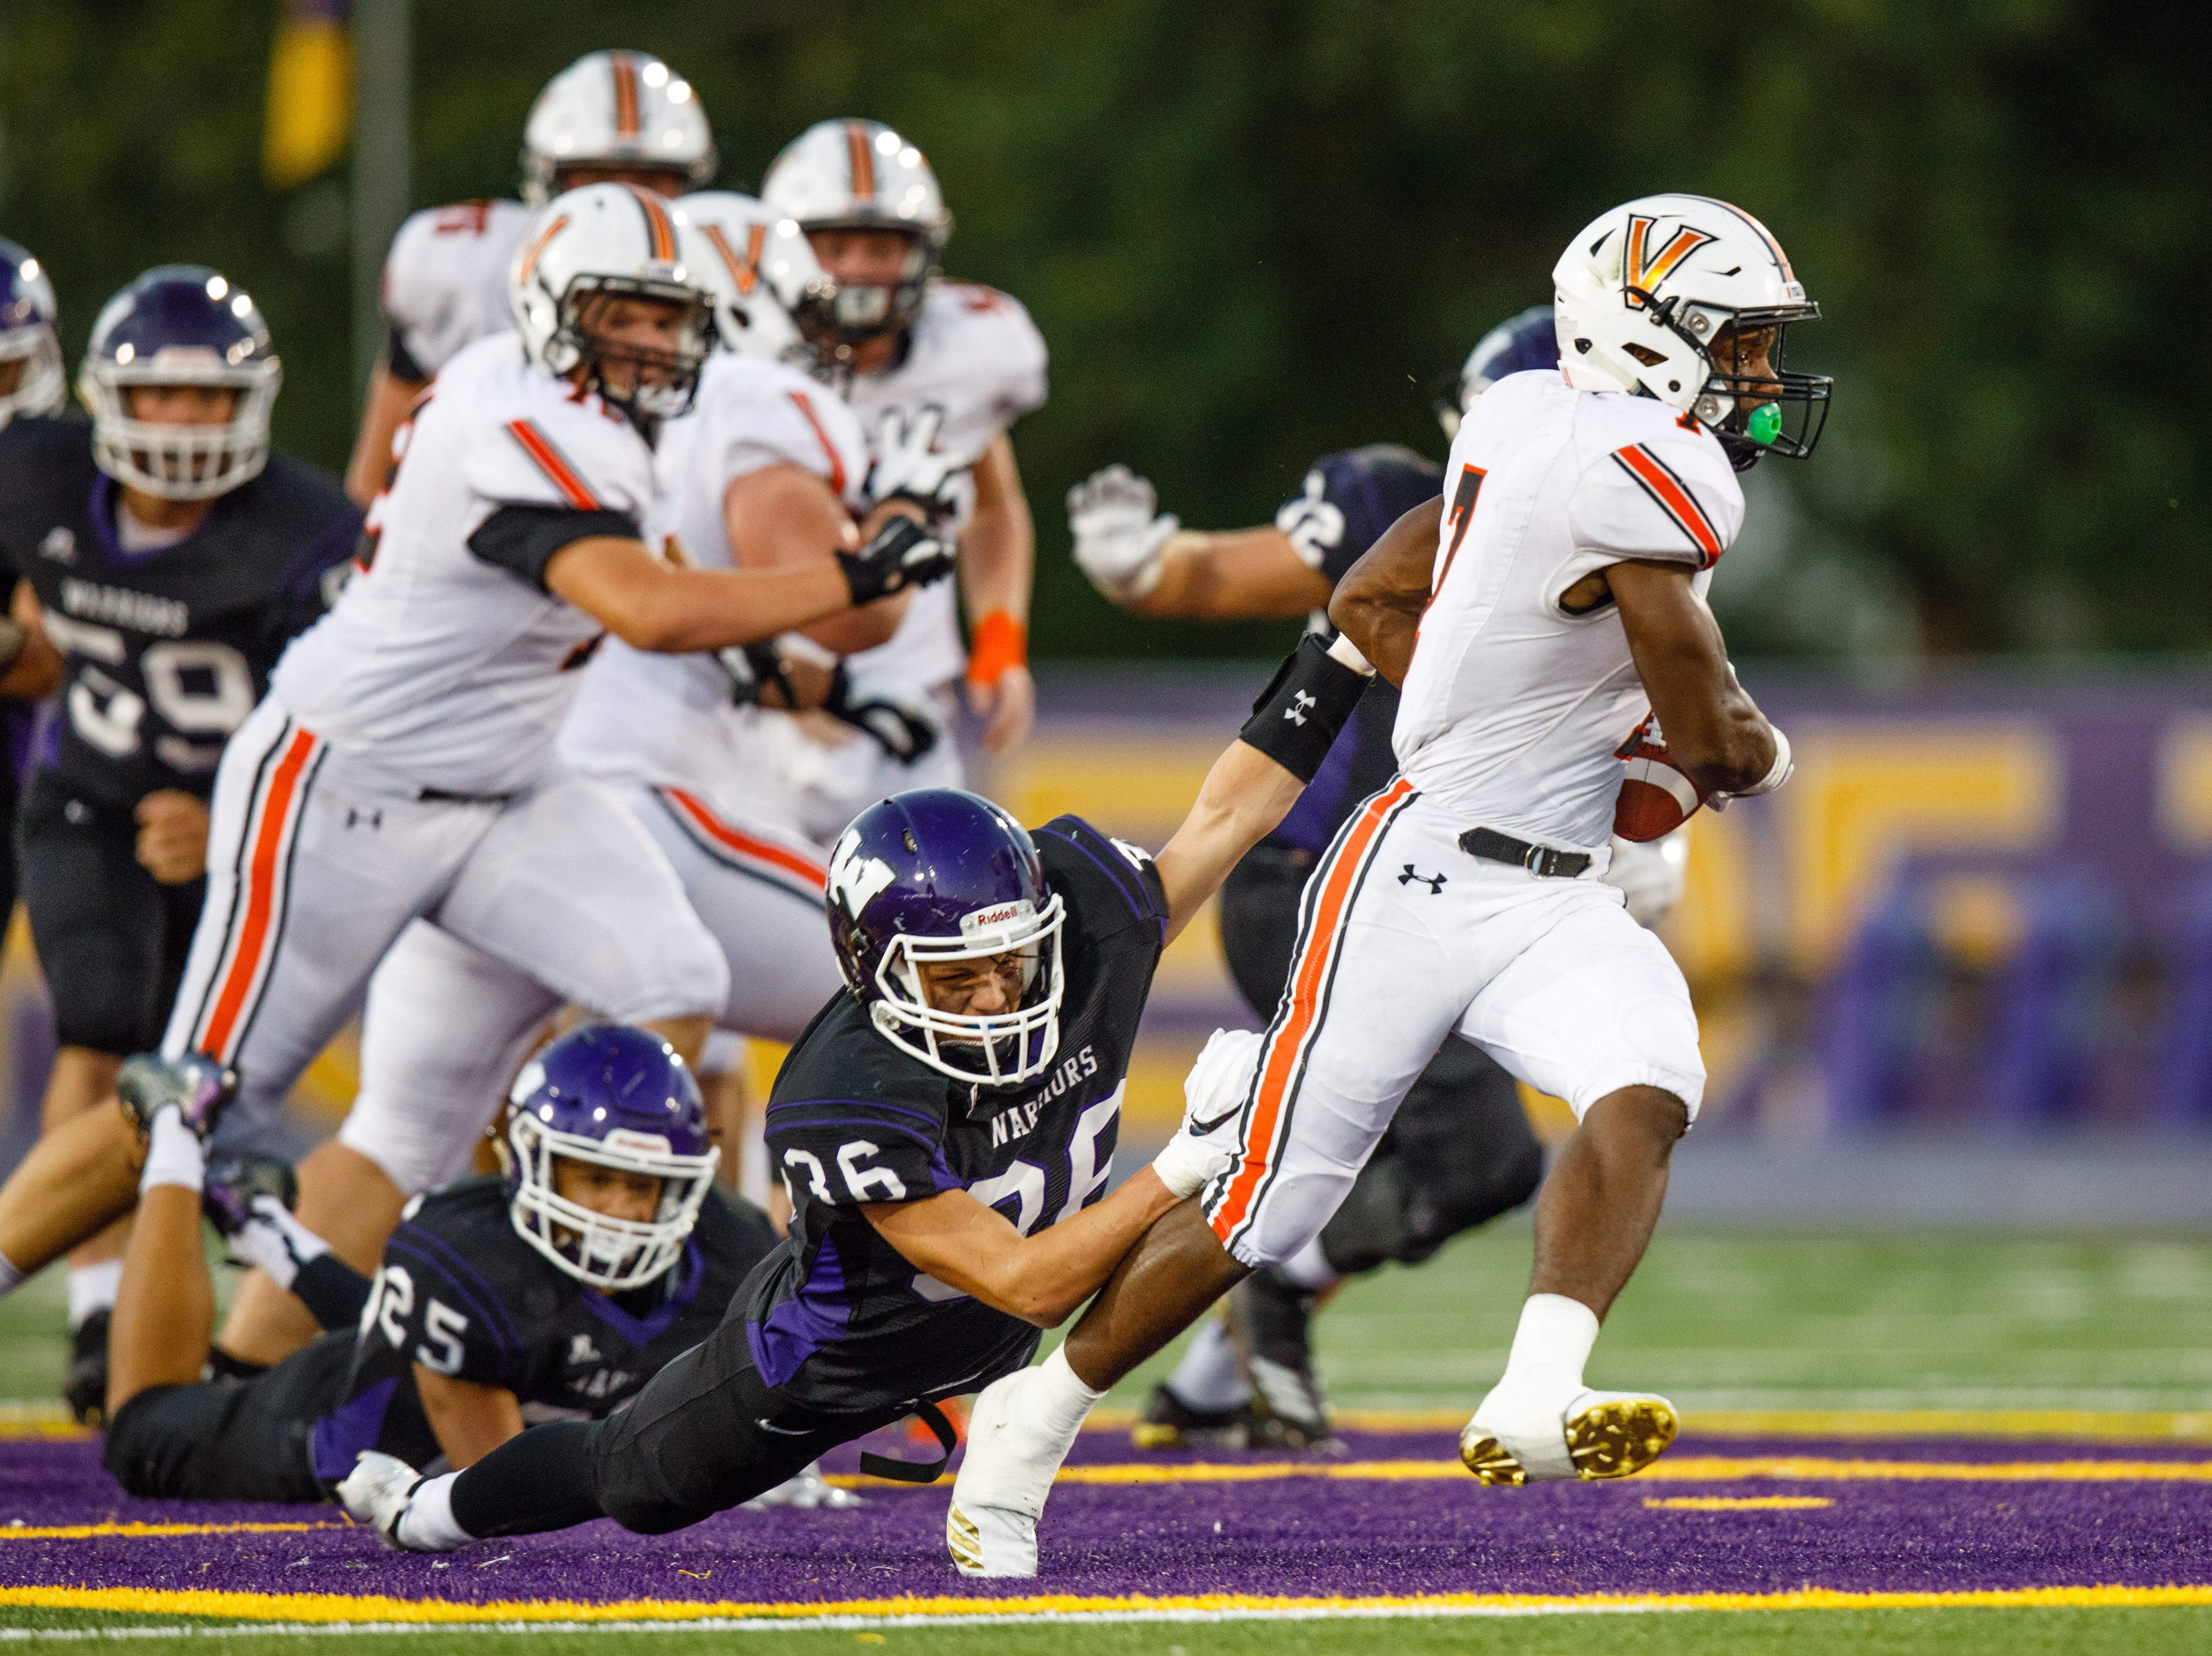 Valley High School's Tre Fugate (7) breaks a tackle by Waukee's Joe Morrison (36) in the first quarter Friday, Sept. 14, 2018, at Waukee Stadium.